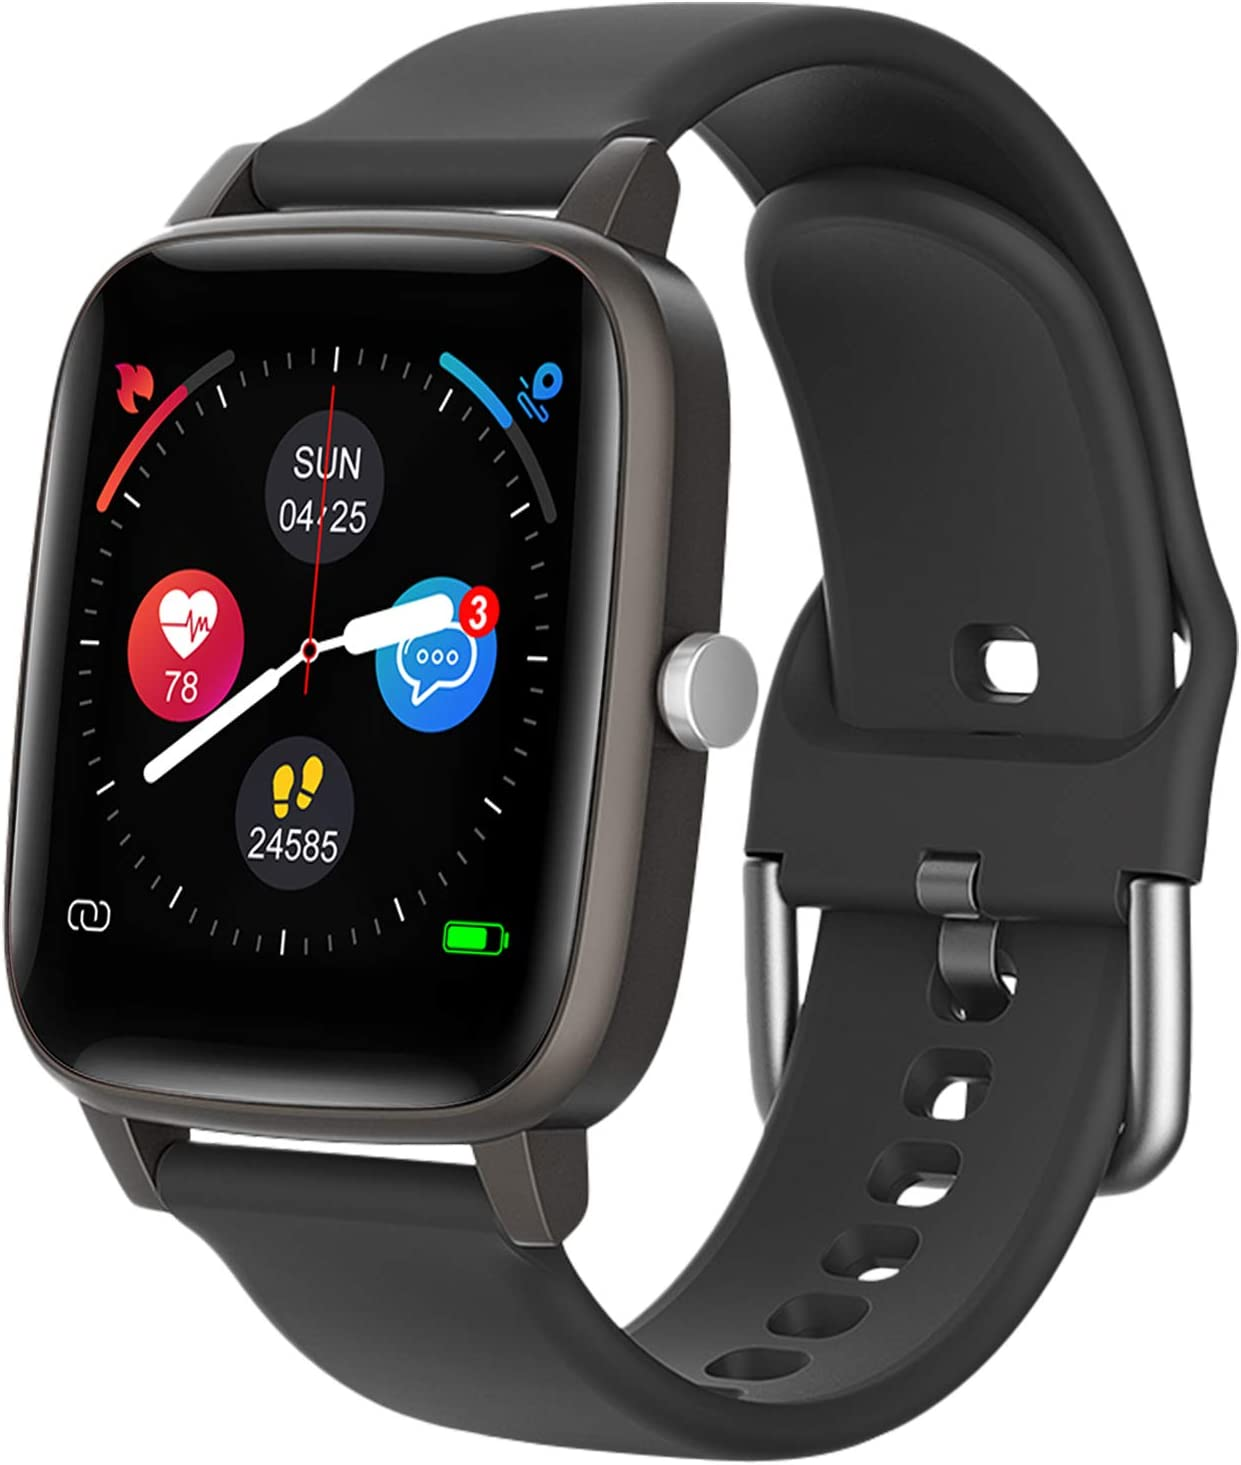 LCW Smart Watch for iPhone Android, Fitness Tracker Health Watch w/Heart Rate Blood Oxygen Monitor, Body Temperature, 1.4